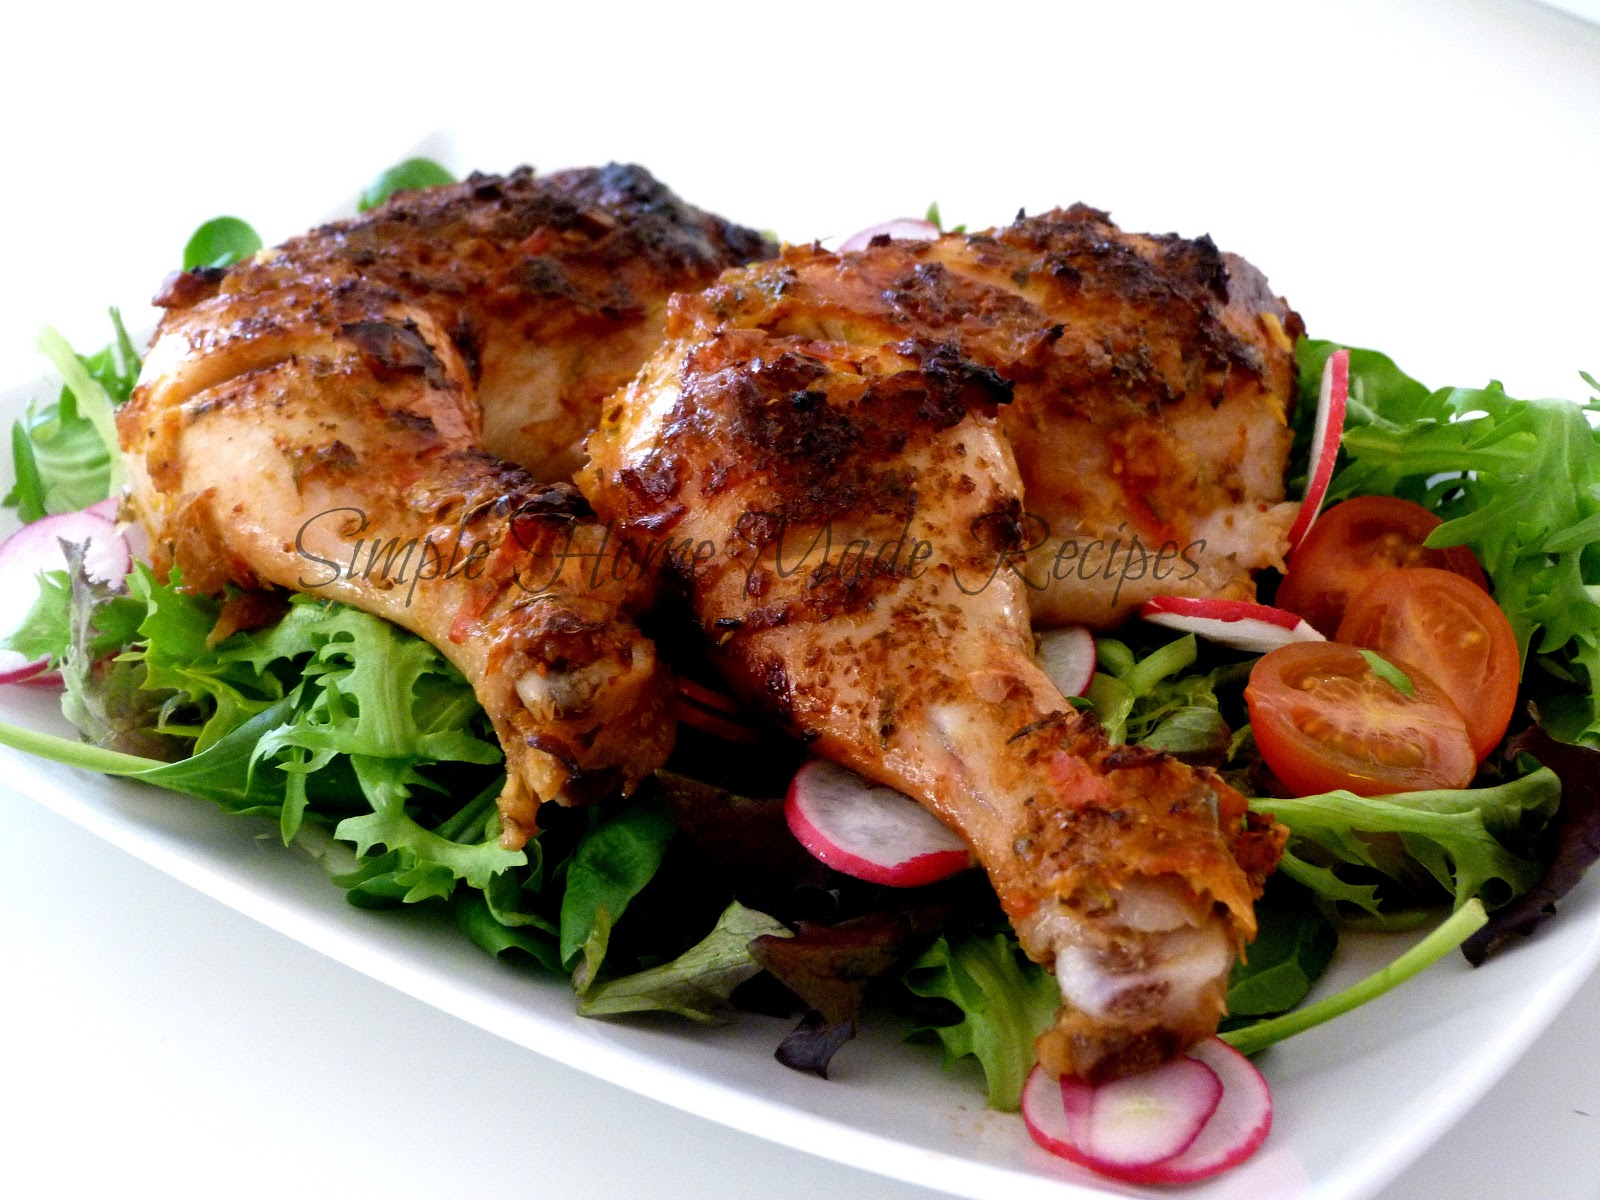 Simple Home Made Recipes Simple Spicy Oven Baked Chicken Legs